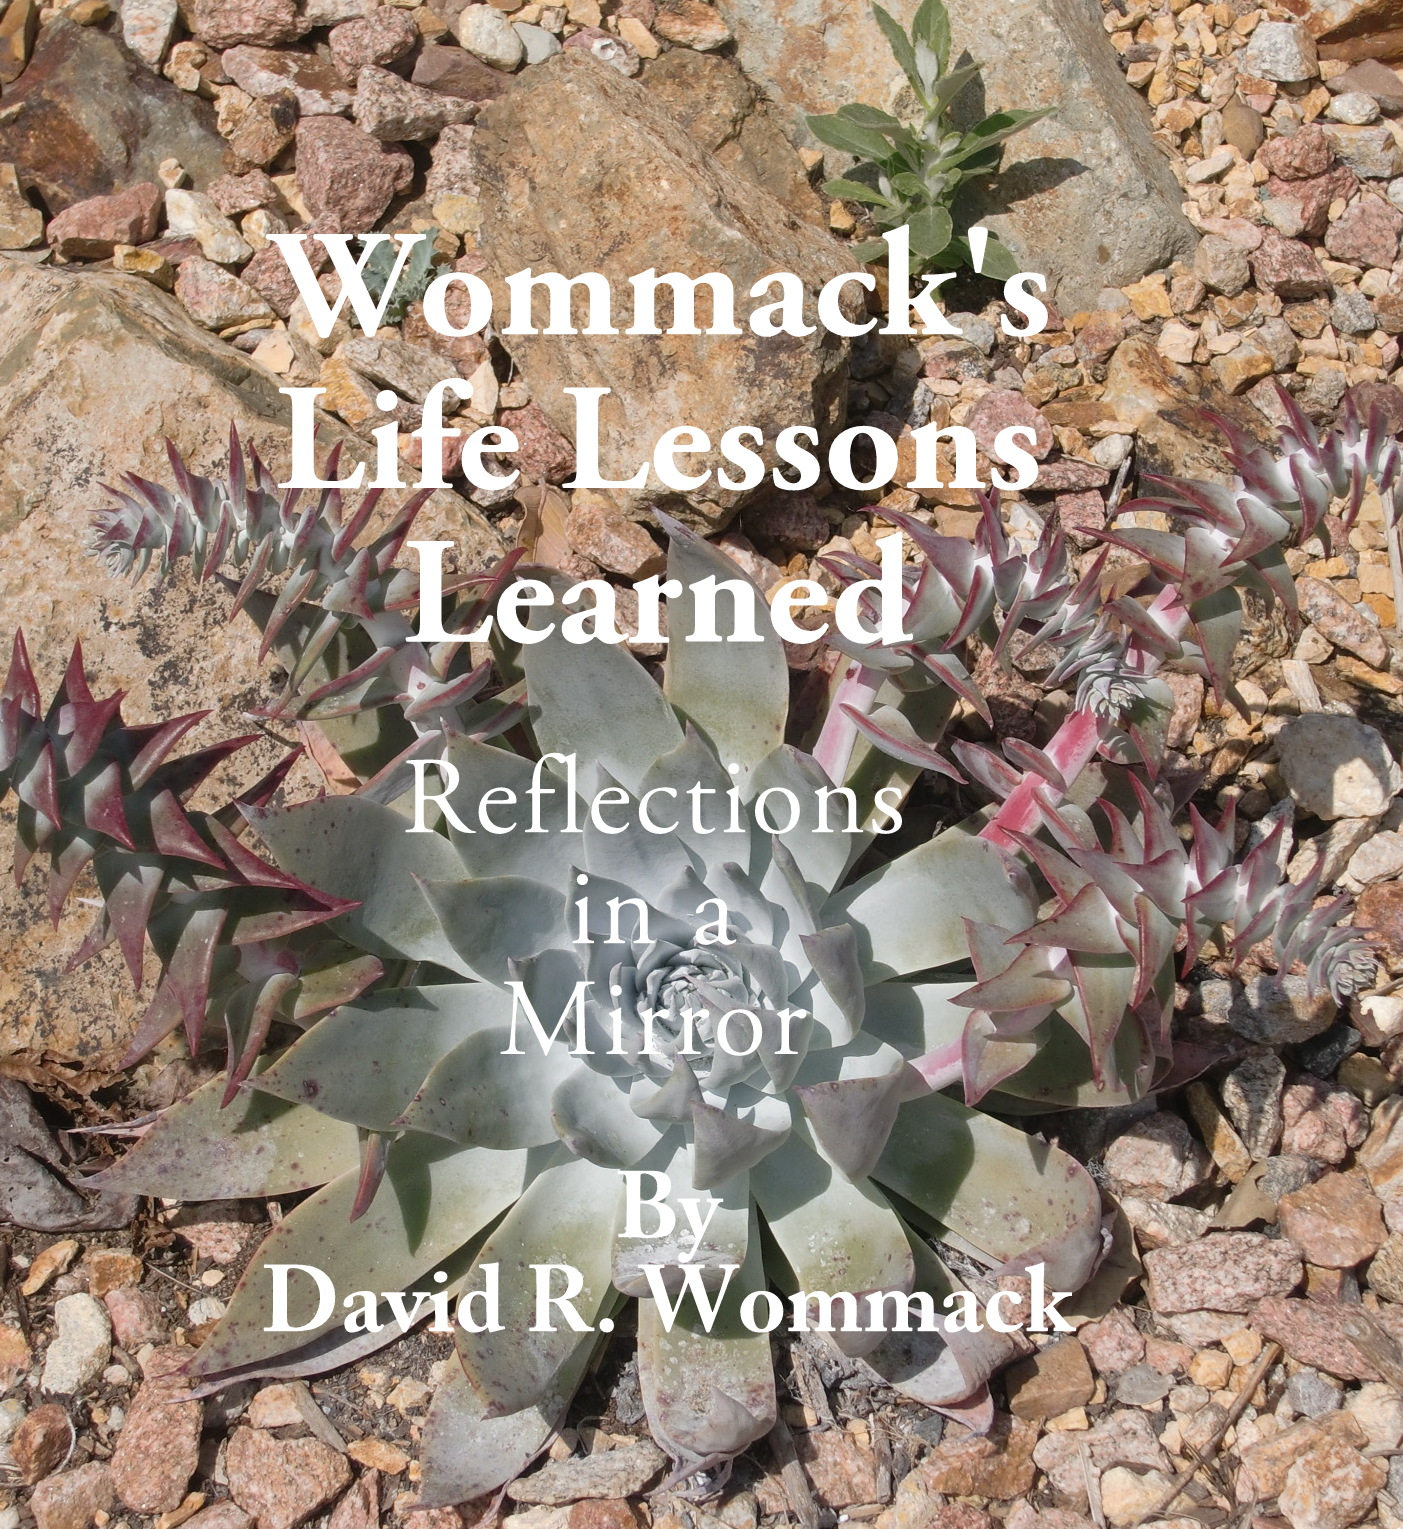 Wommacks Life Lessons Learned: Reflections in a Mirror